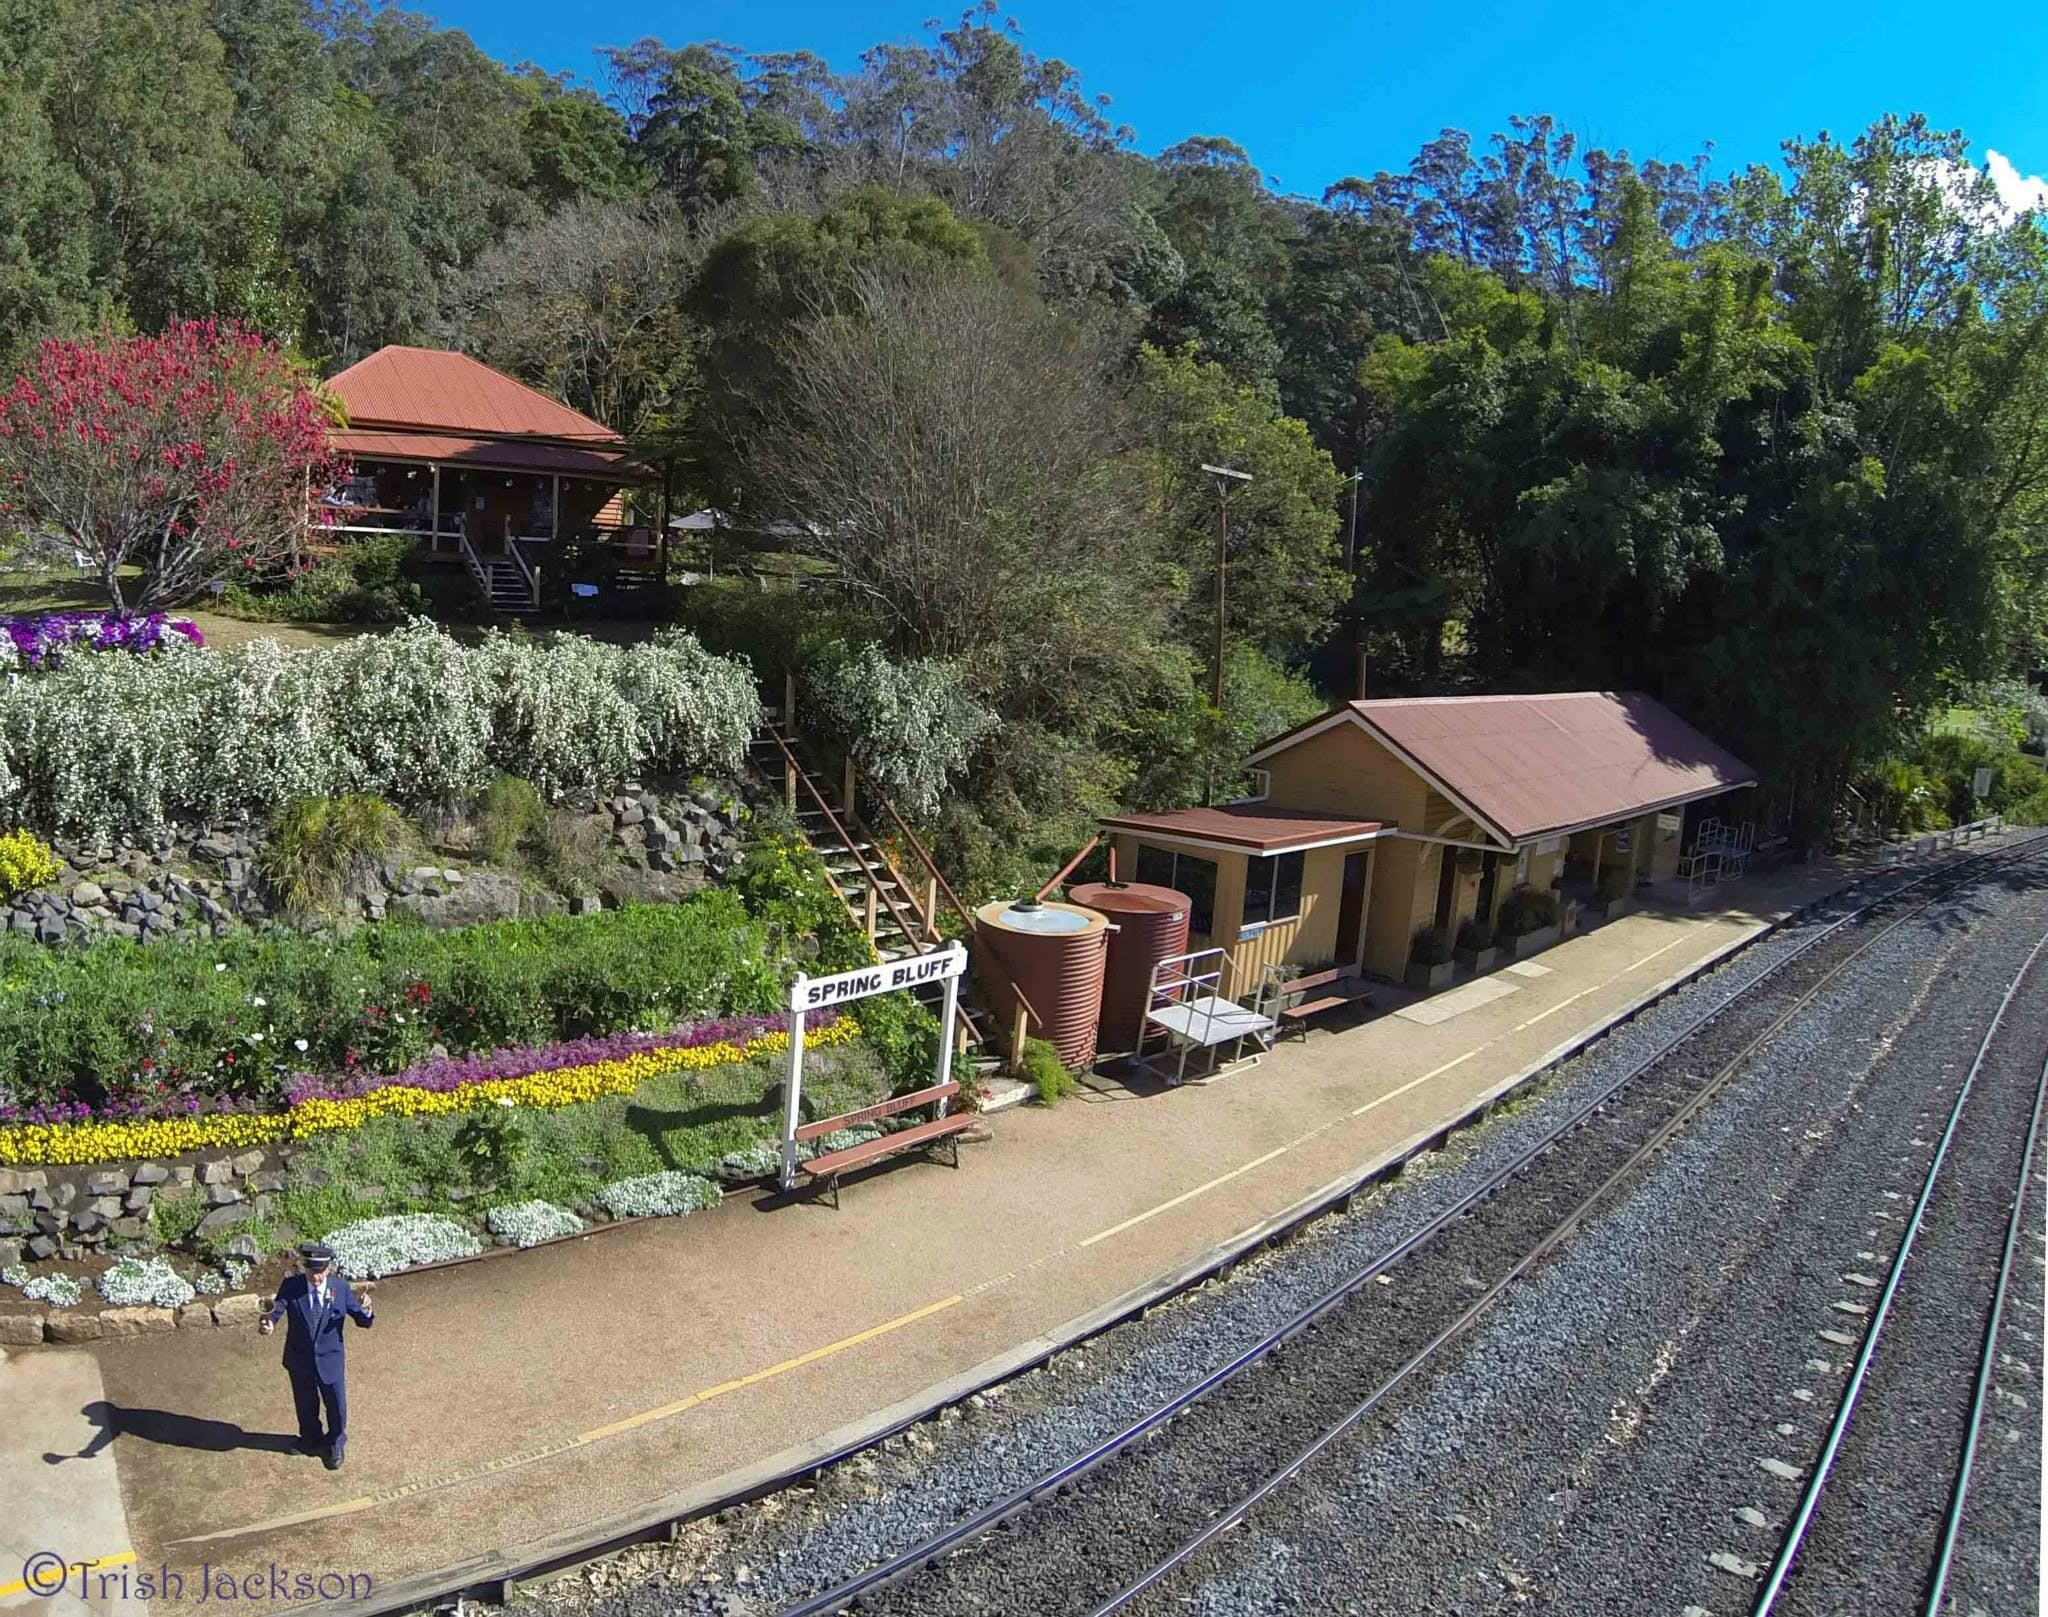 Spring Bluff Railway Station - Accommodation Adelaide